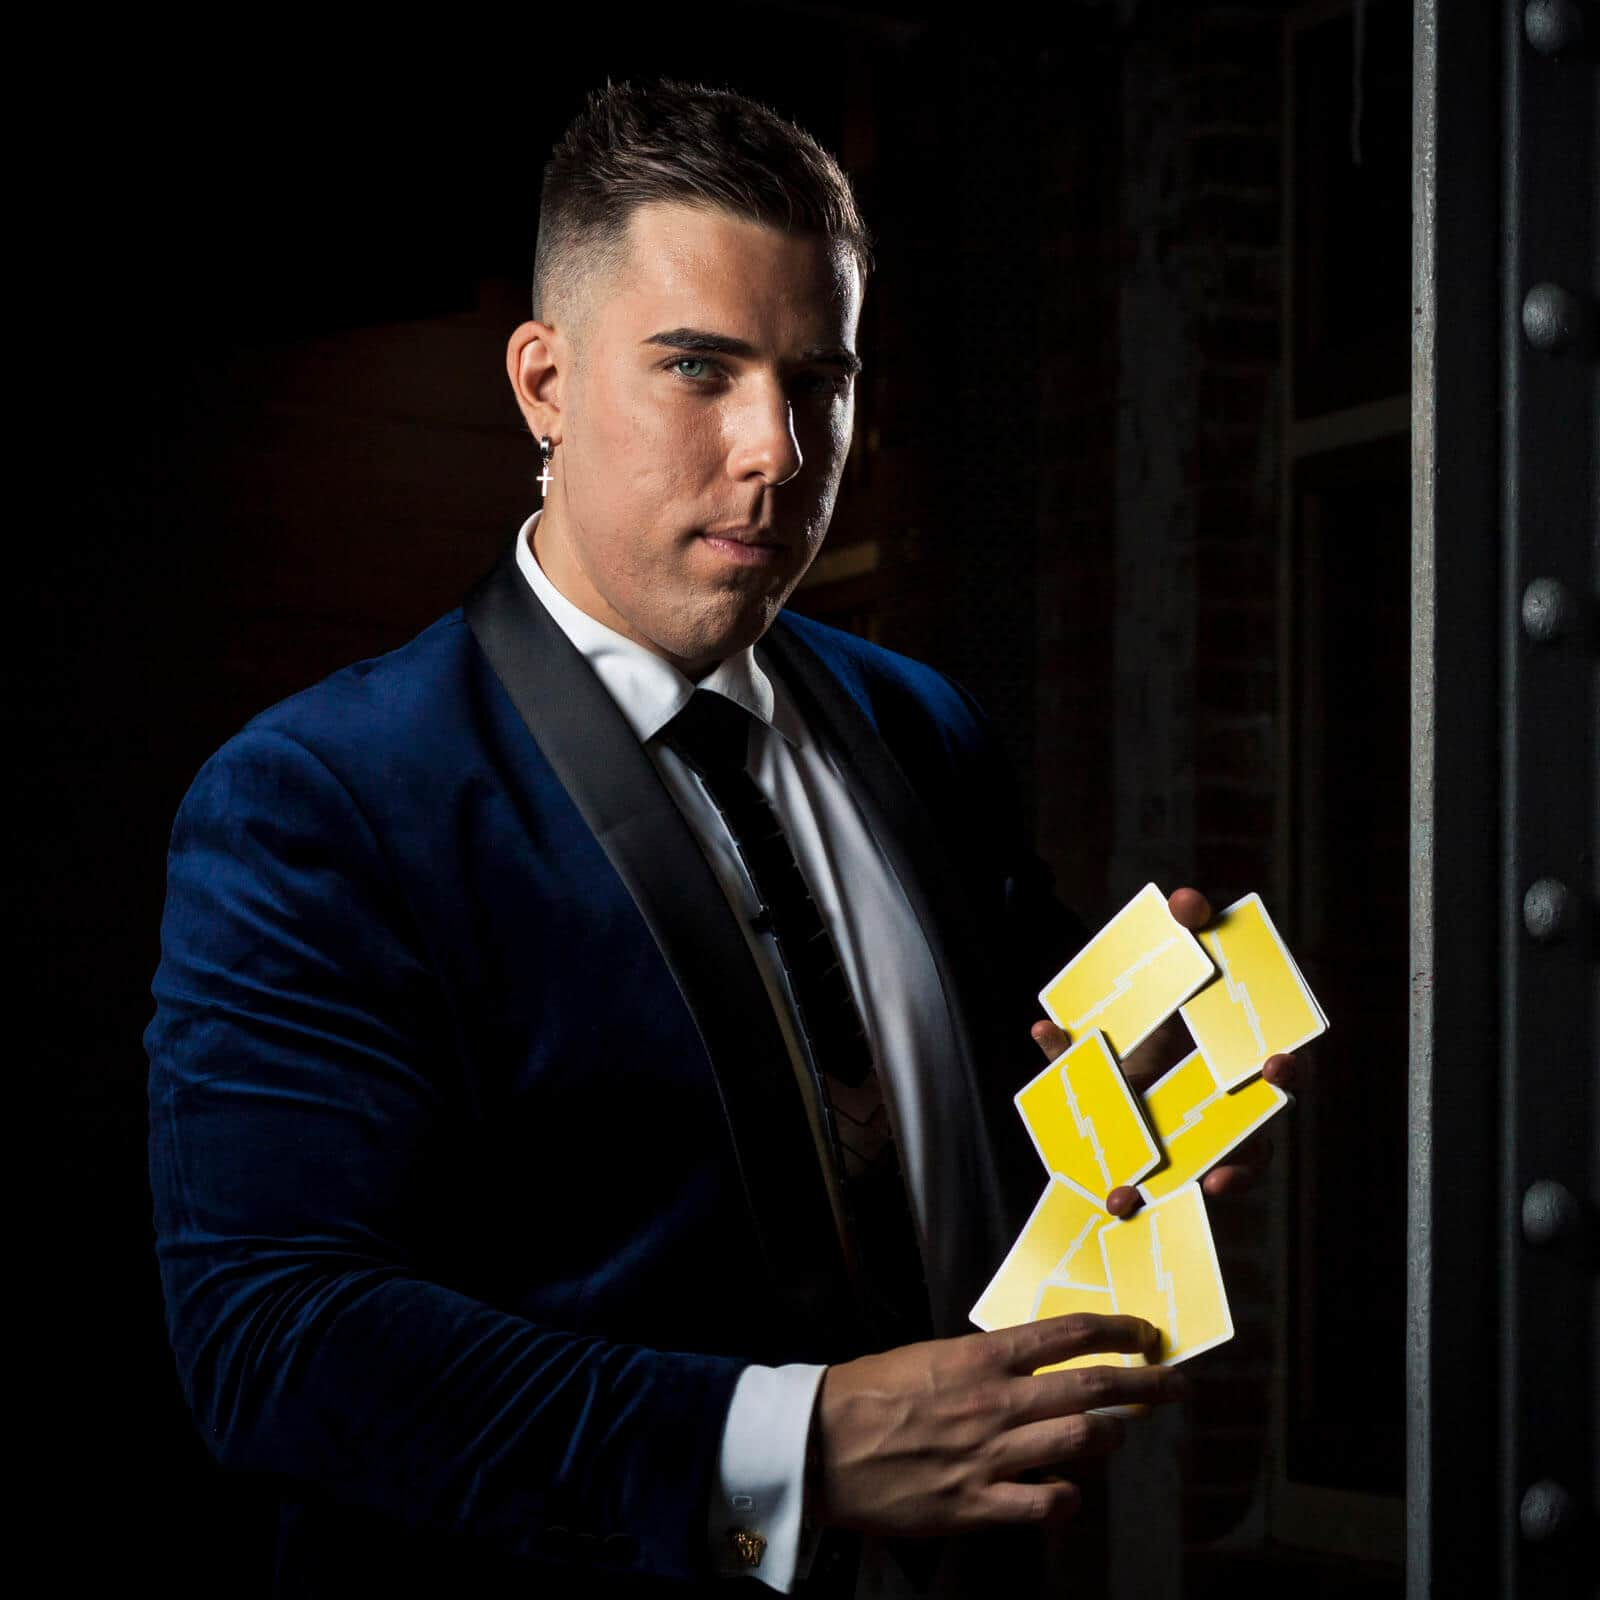 corporate-magician-sydney-roving-wedding-magicians